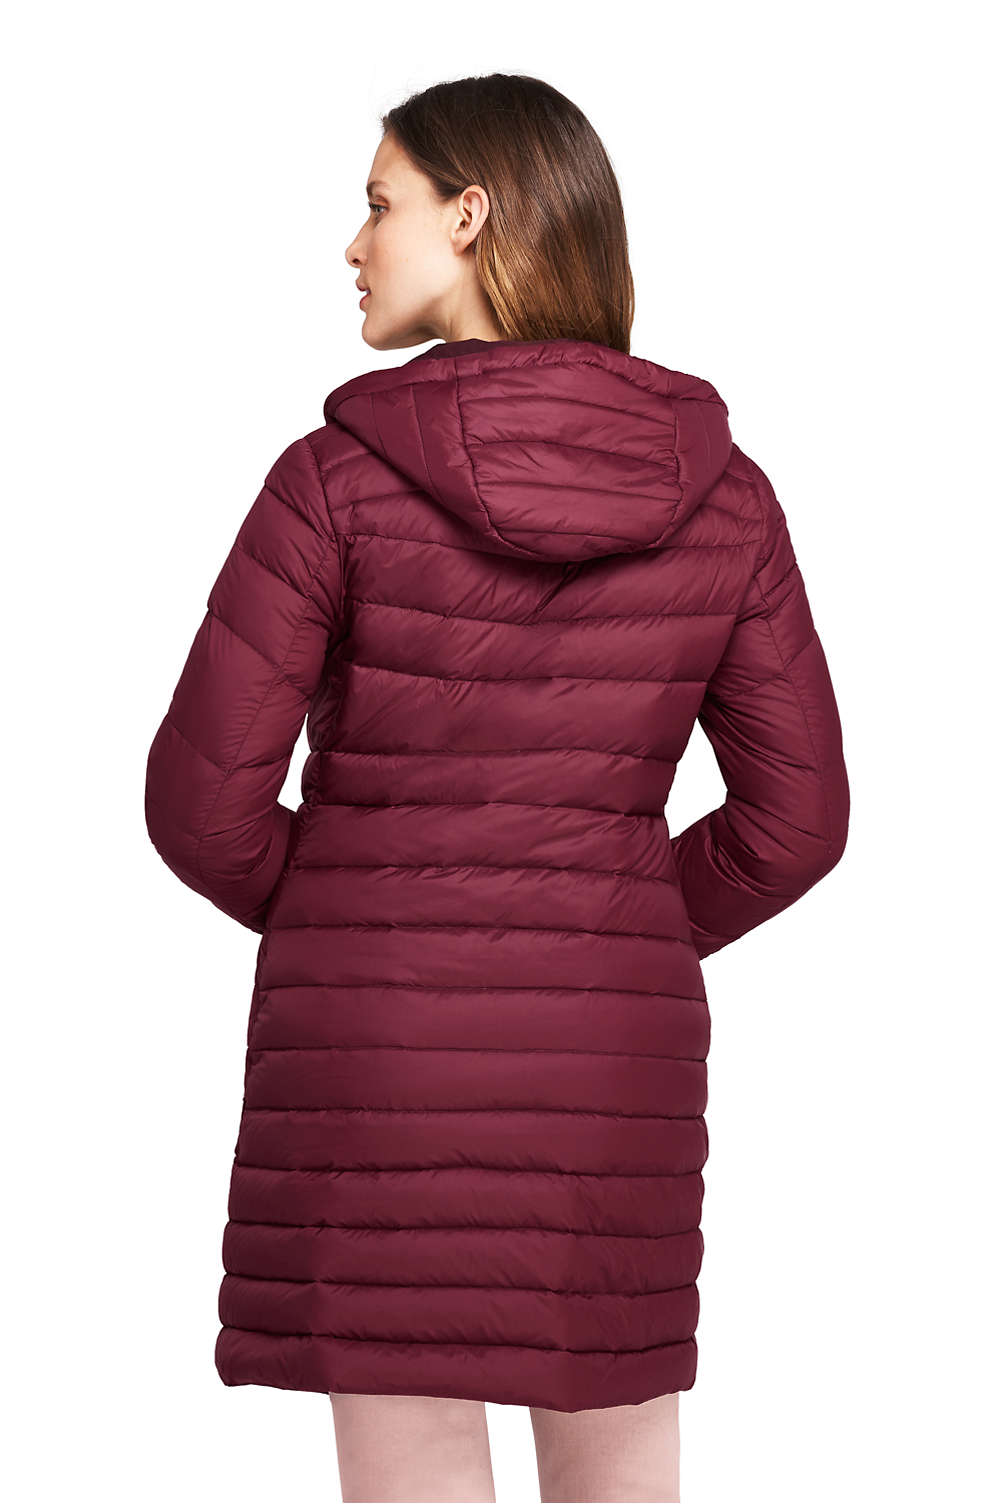 9e0b5ec07685 Women s Ultralight Packable Long Down Coat. 3.9. Rated 3.93 out of 5 stars.  27 ReviewsWrite a Review. Item  5027246U4. View Fullscreen